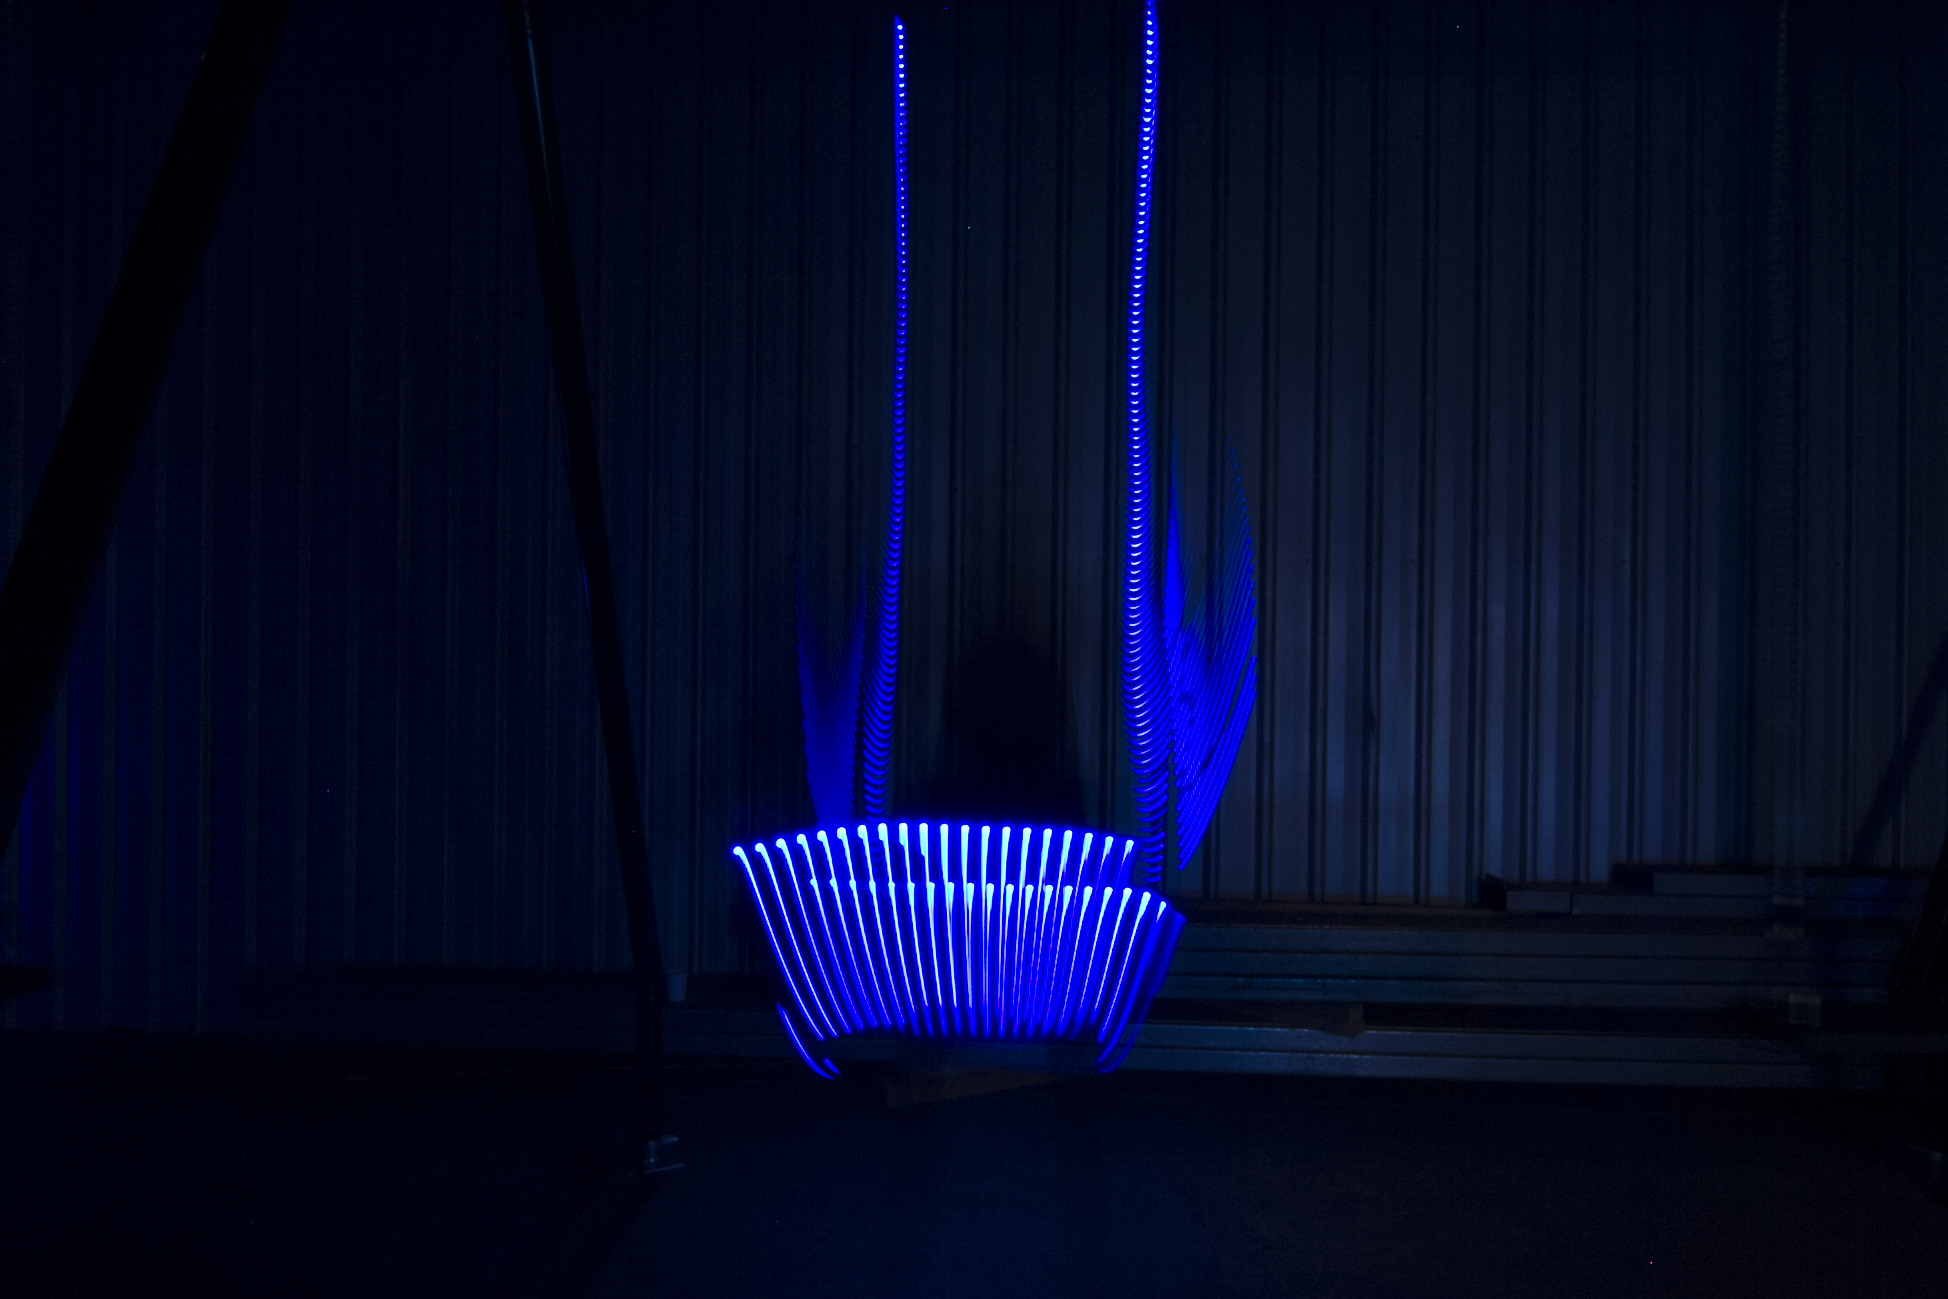 One seat of the Infinity swing glowing in blue light.